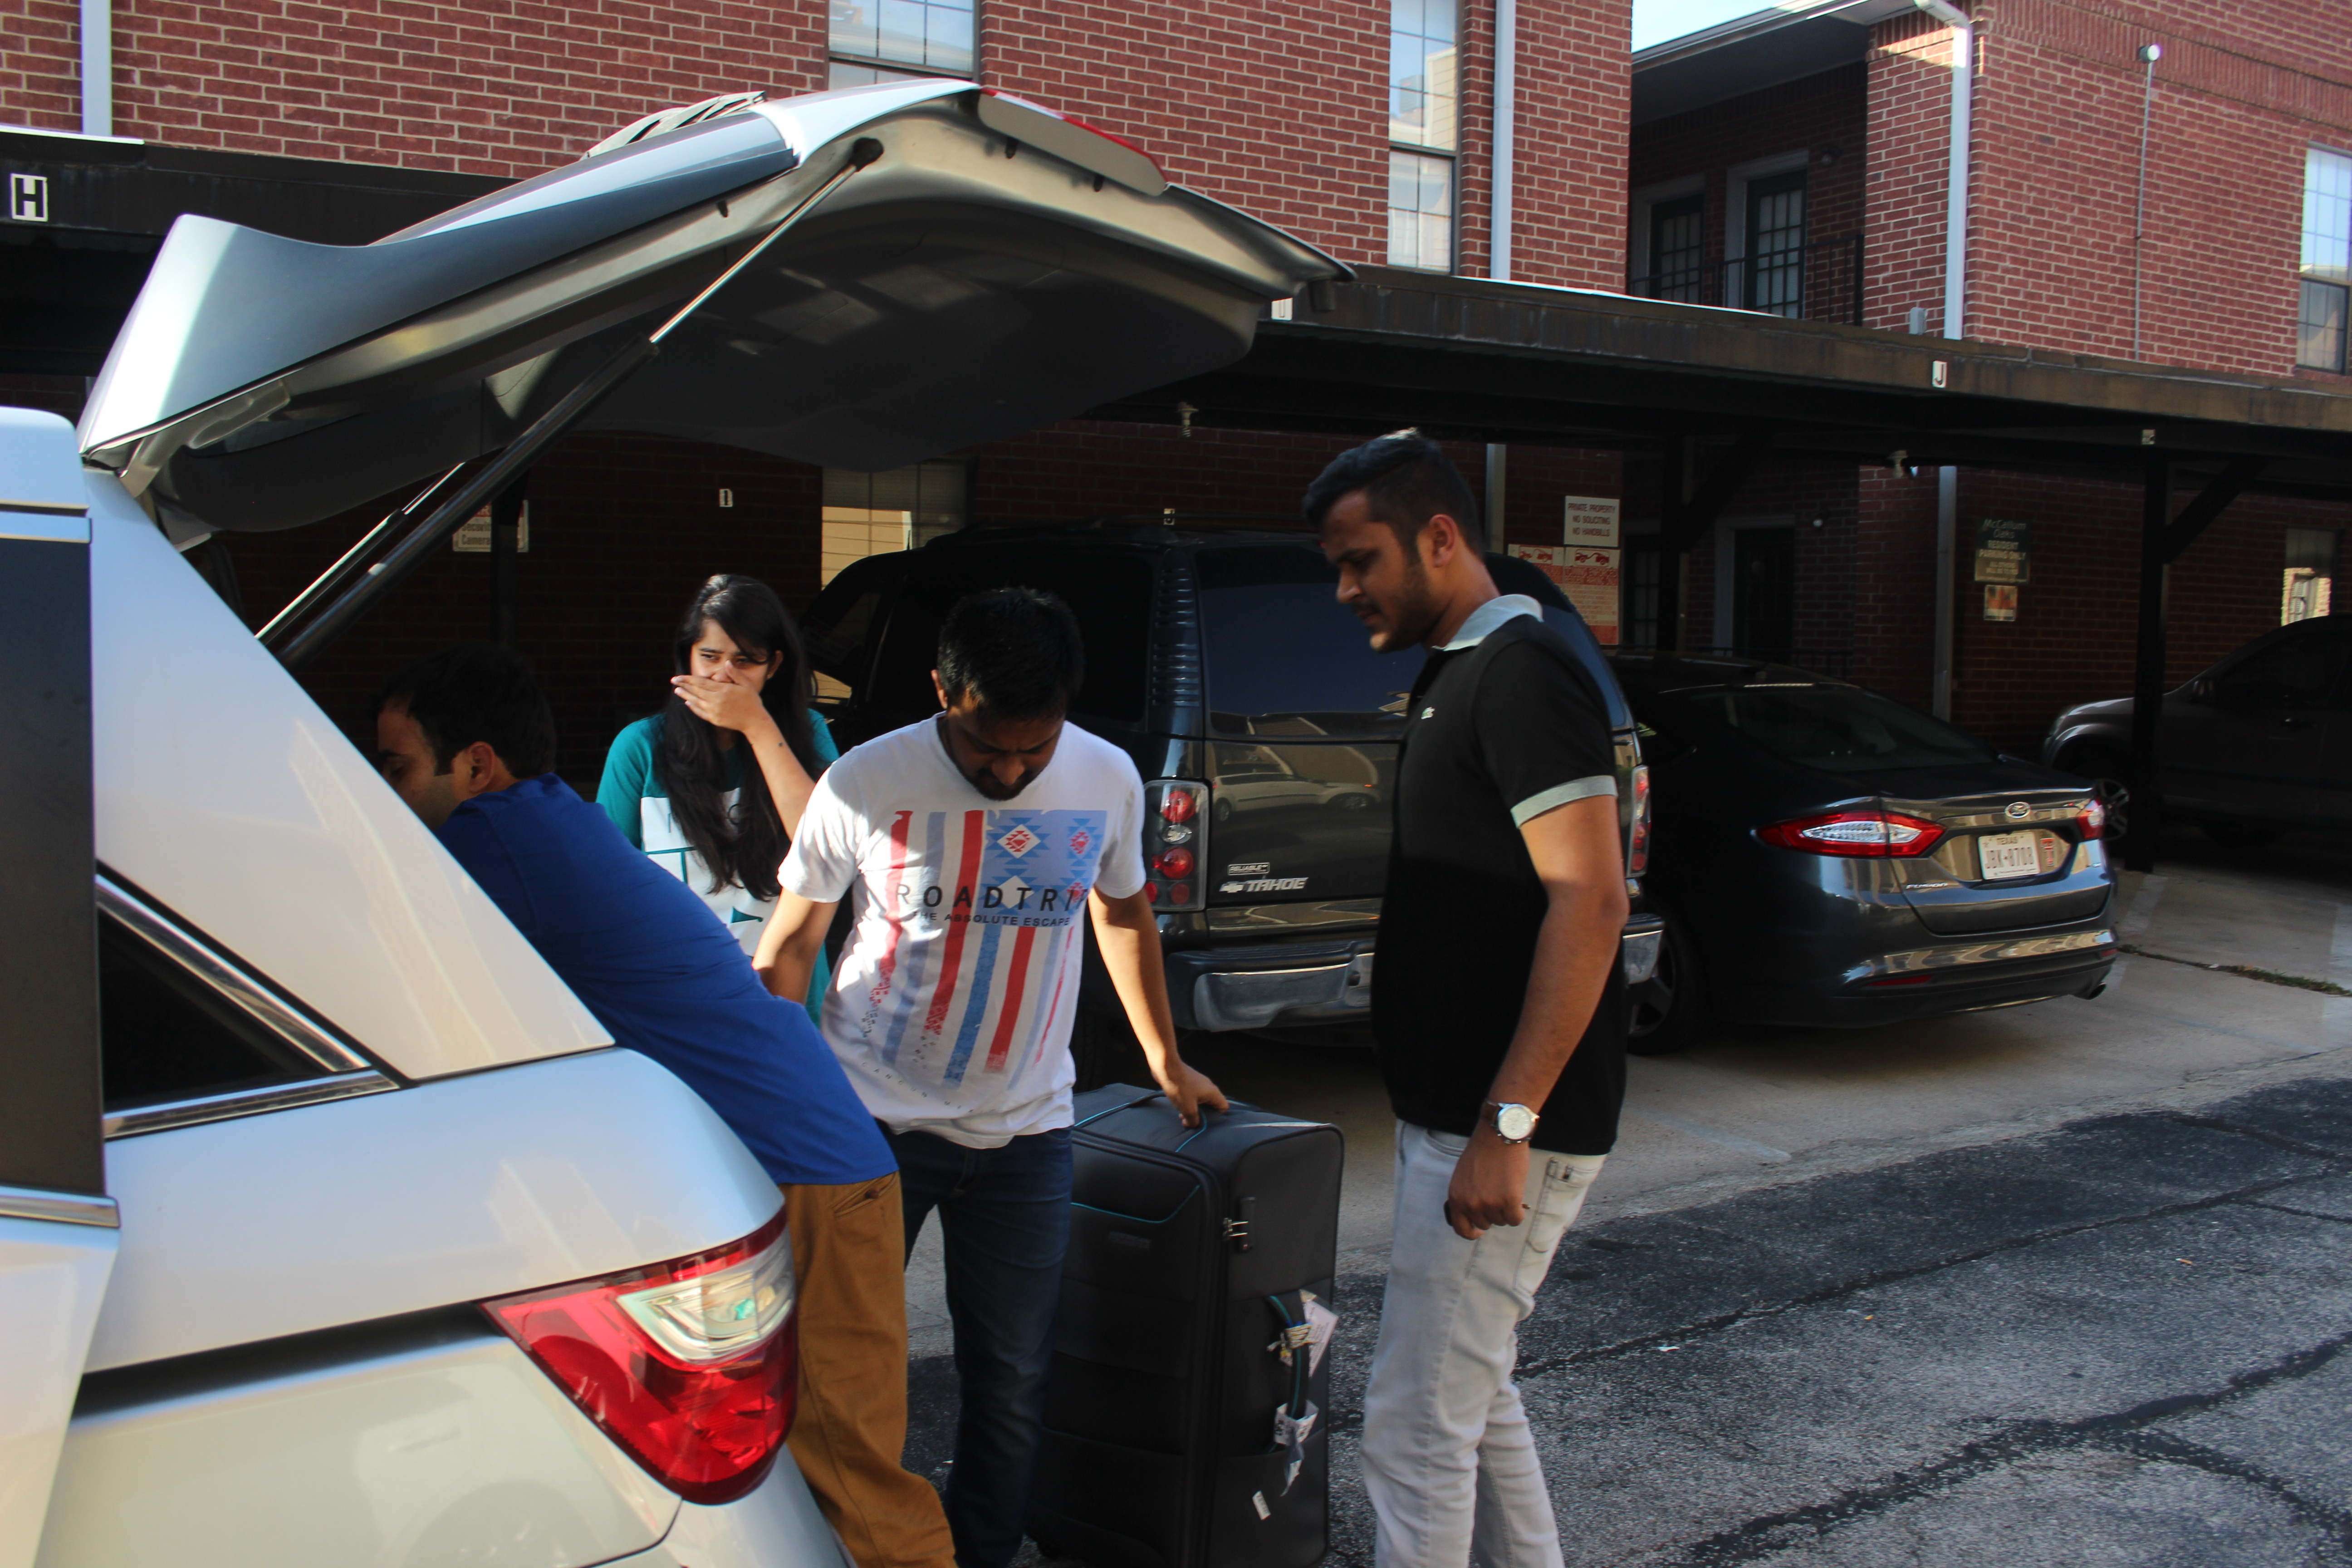 UTD orgs assist int'l students with arrival